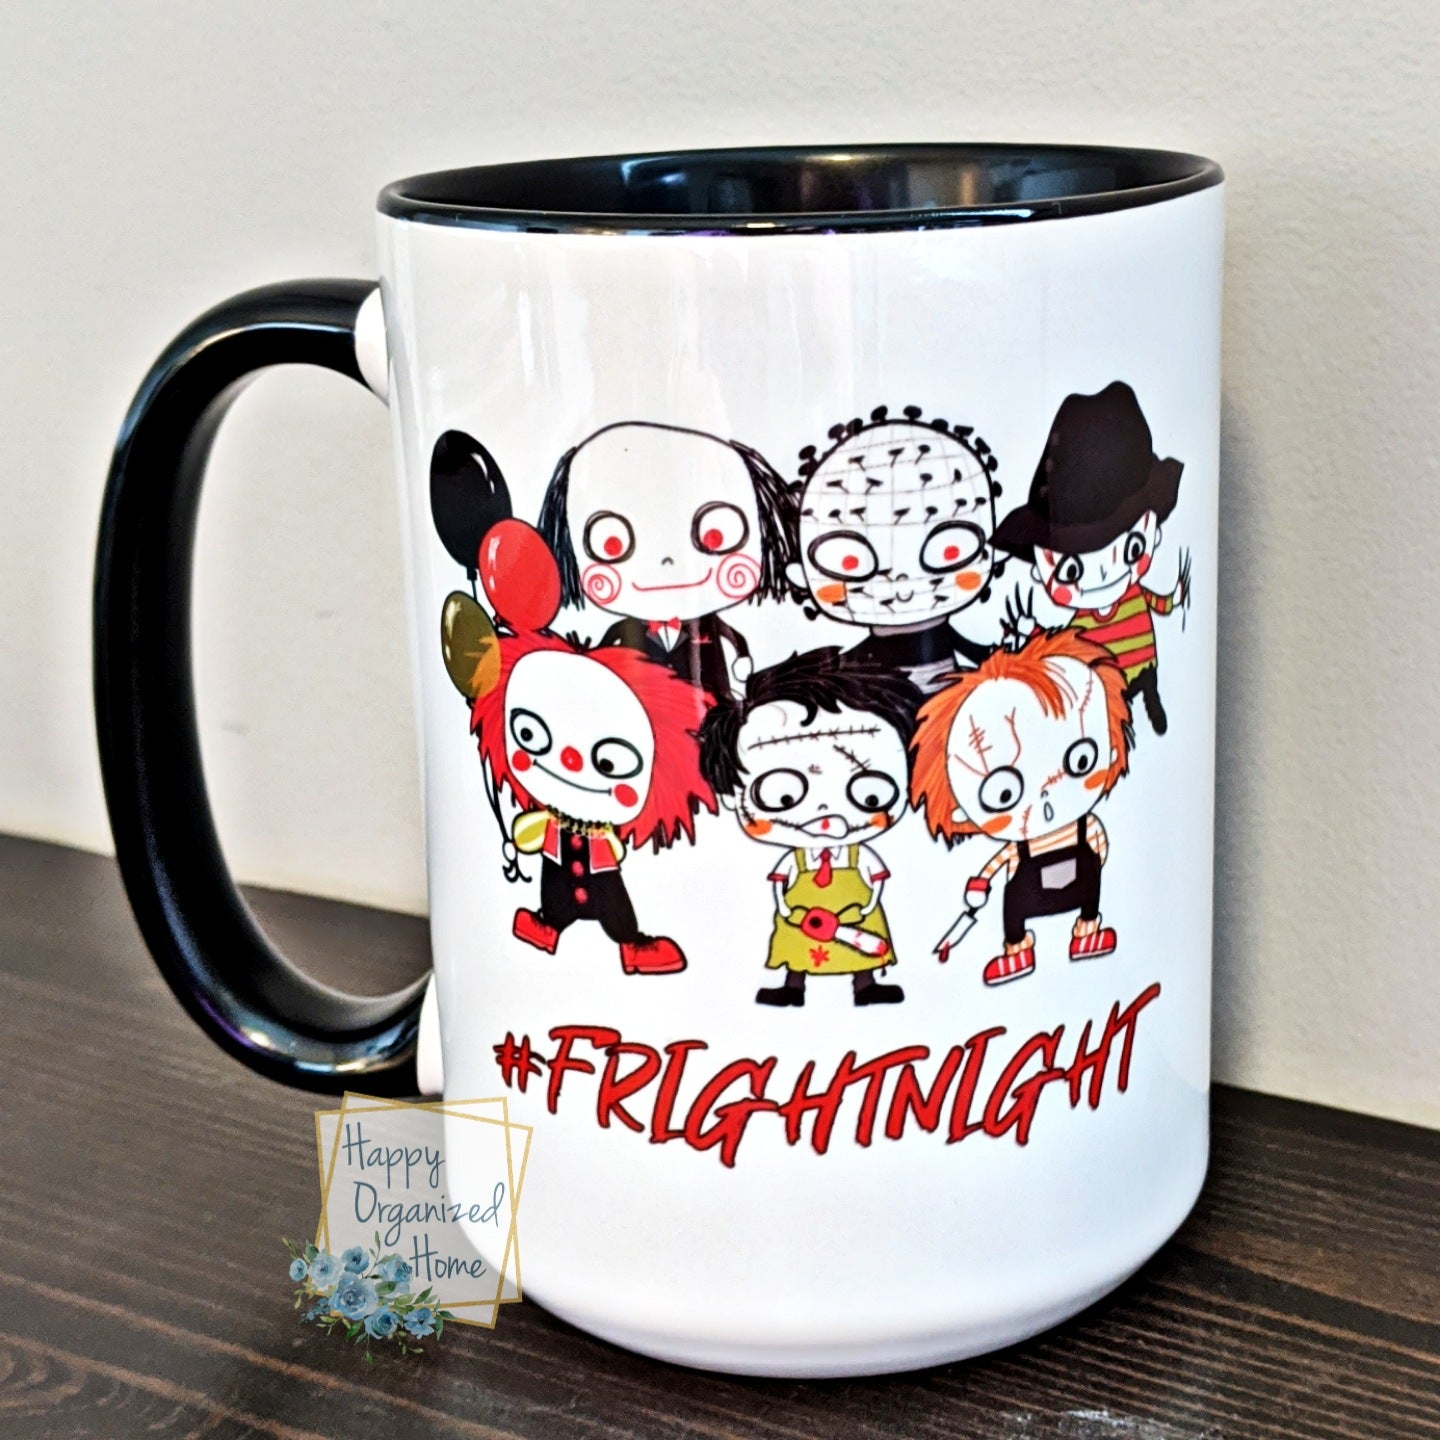 Fright night - Fall mug Coffee Tea Mug